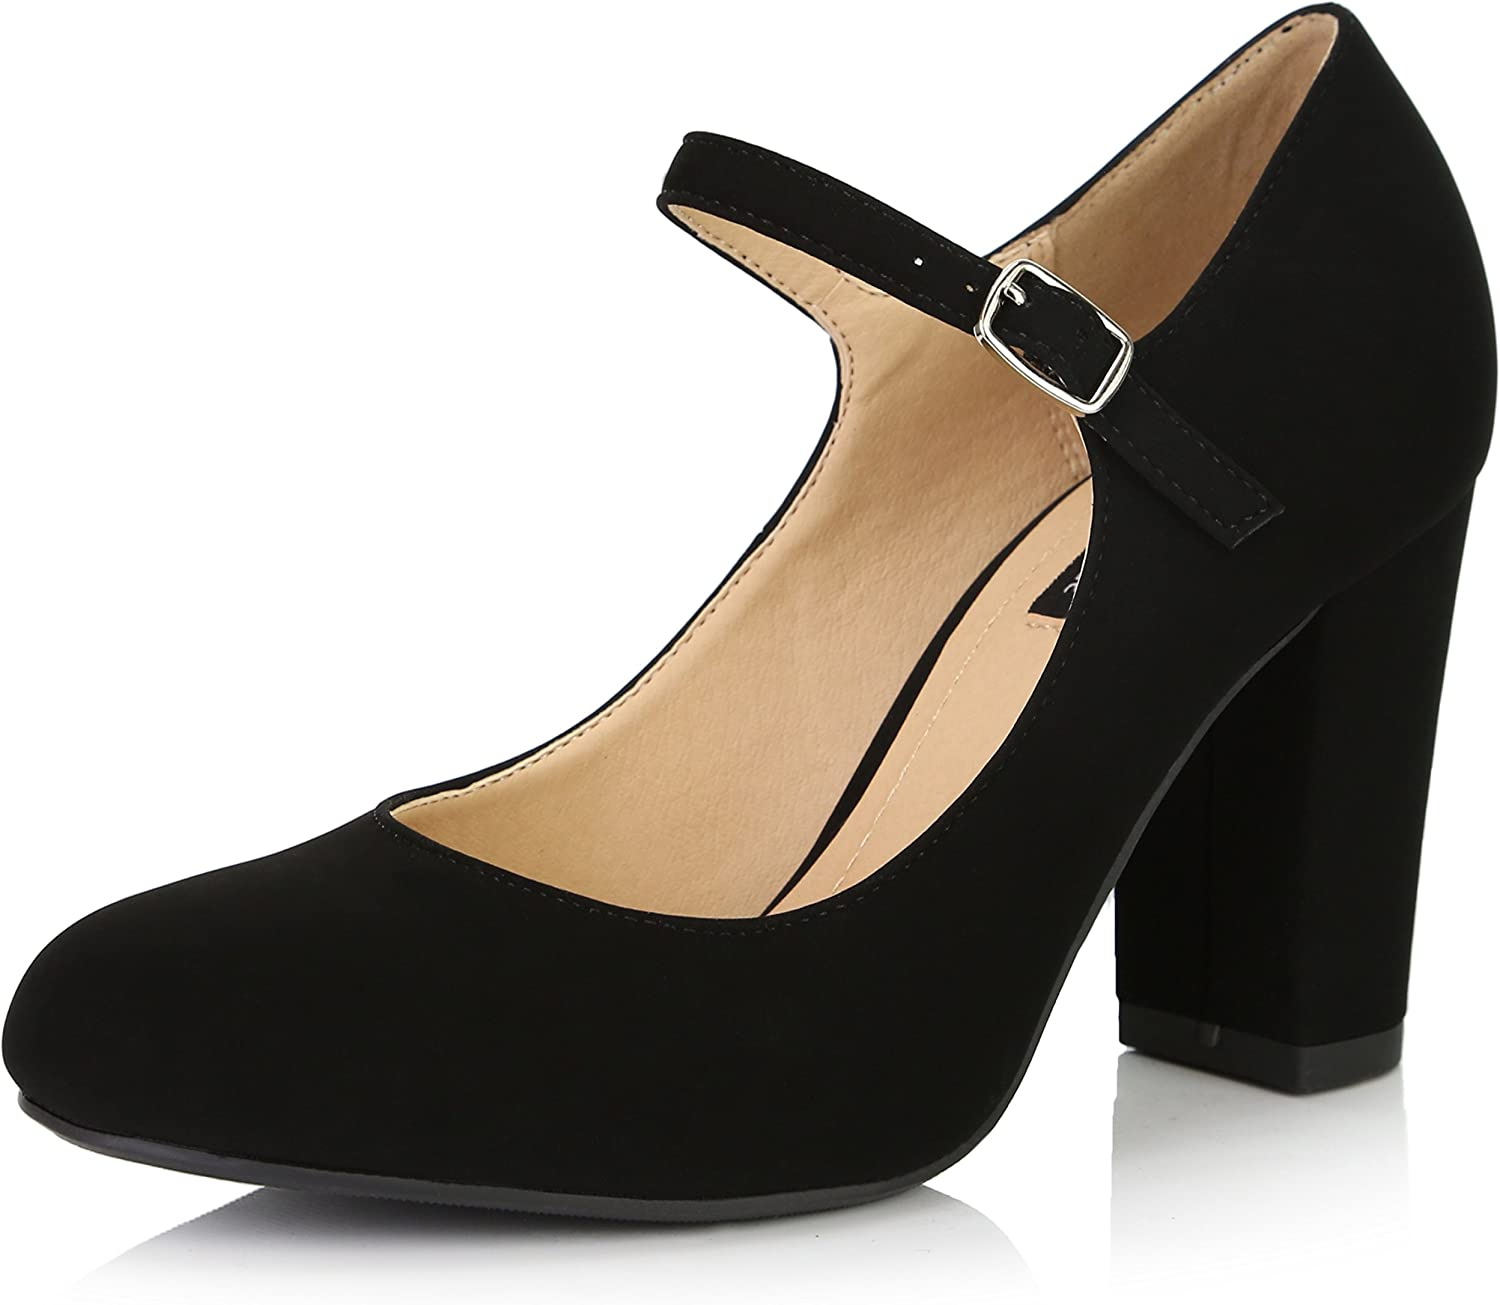 Dailyshoes Women's Chunky Classic Round Toe Ankle Strap shoes with Buckle Closure